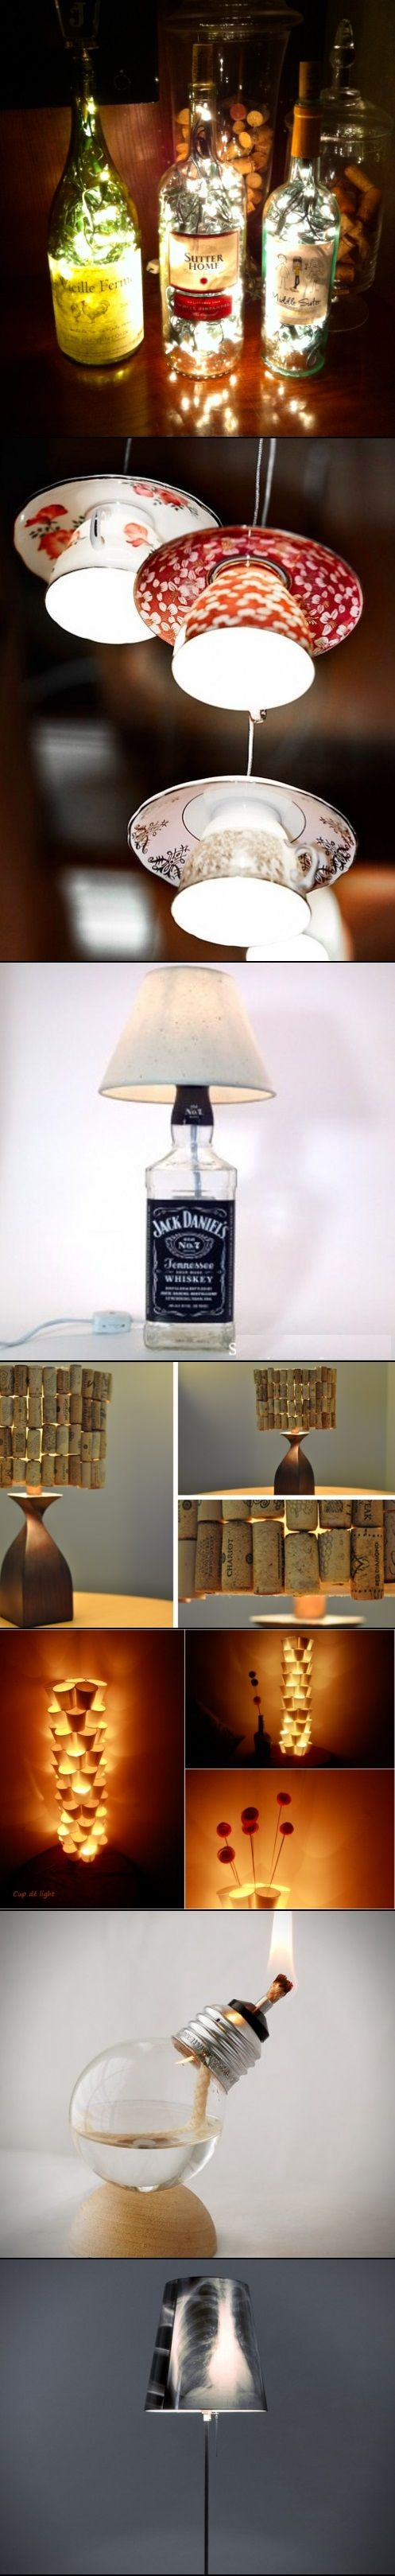 DIY Recycled Lamps